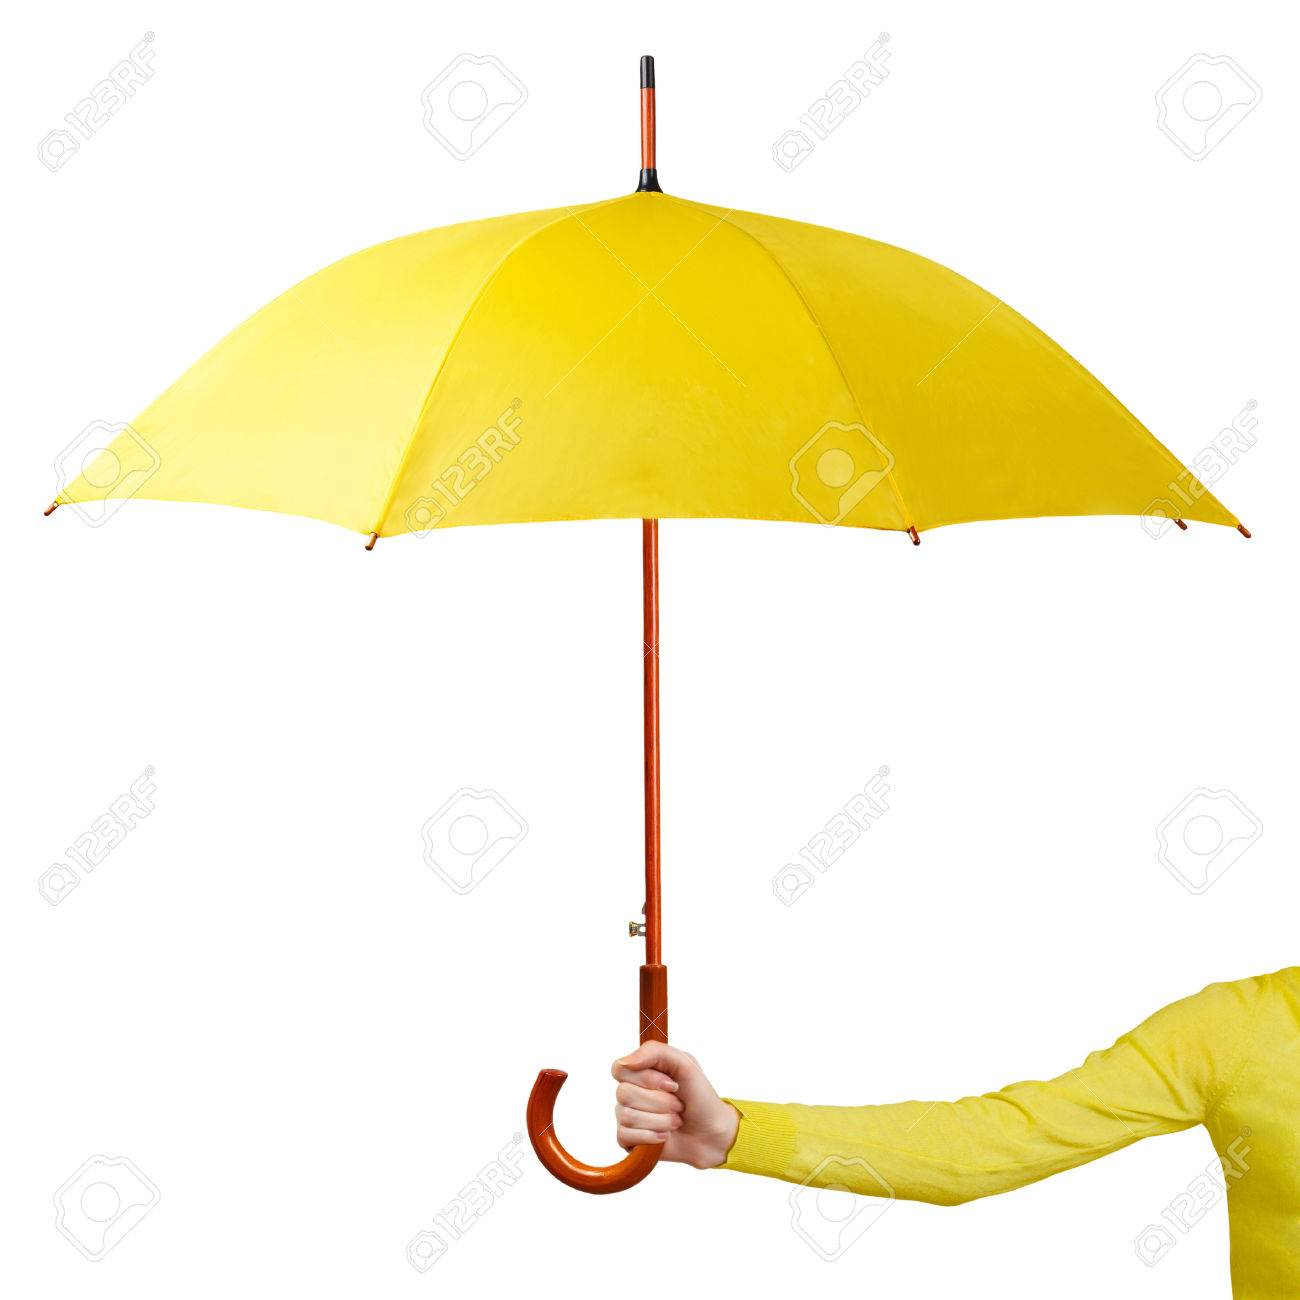 Hand holding a yellow umbrella isolated on white background - 25751241